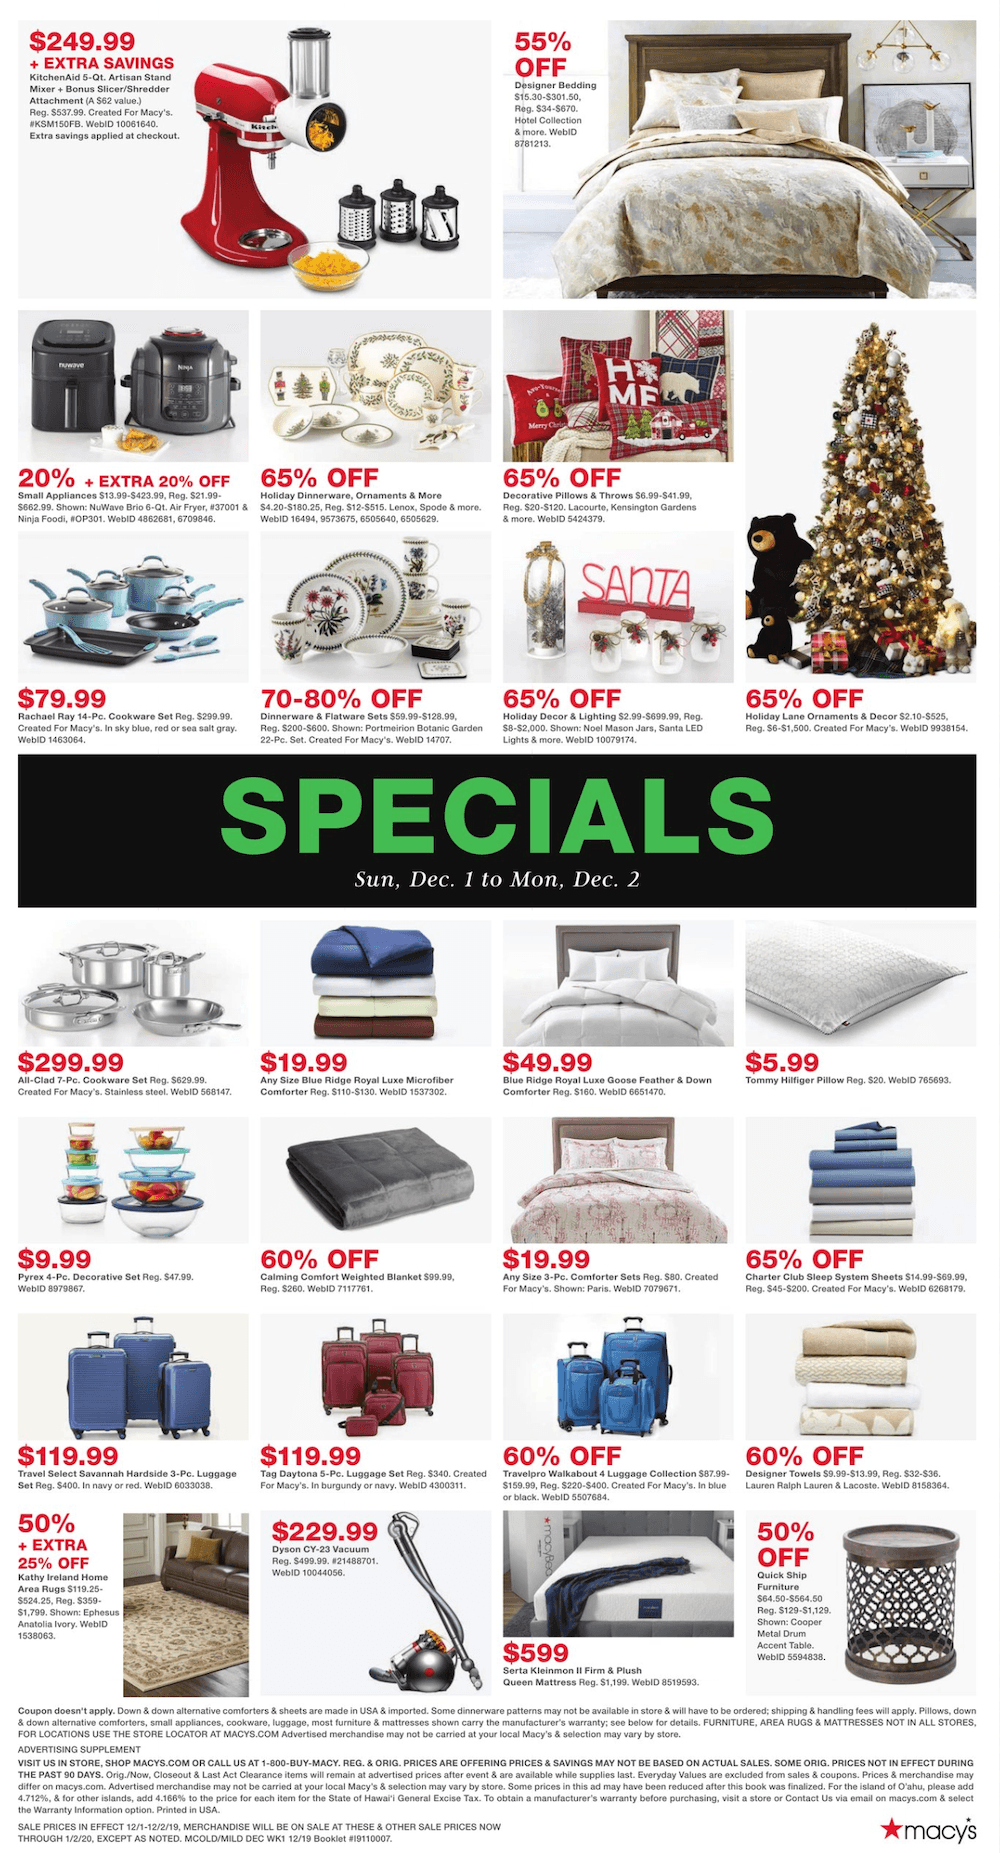 Macy's Cyber Monday 2019 Page 4